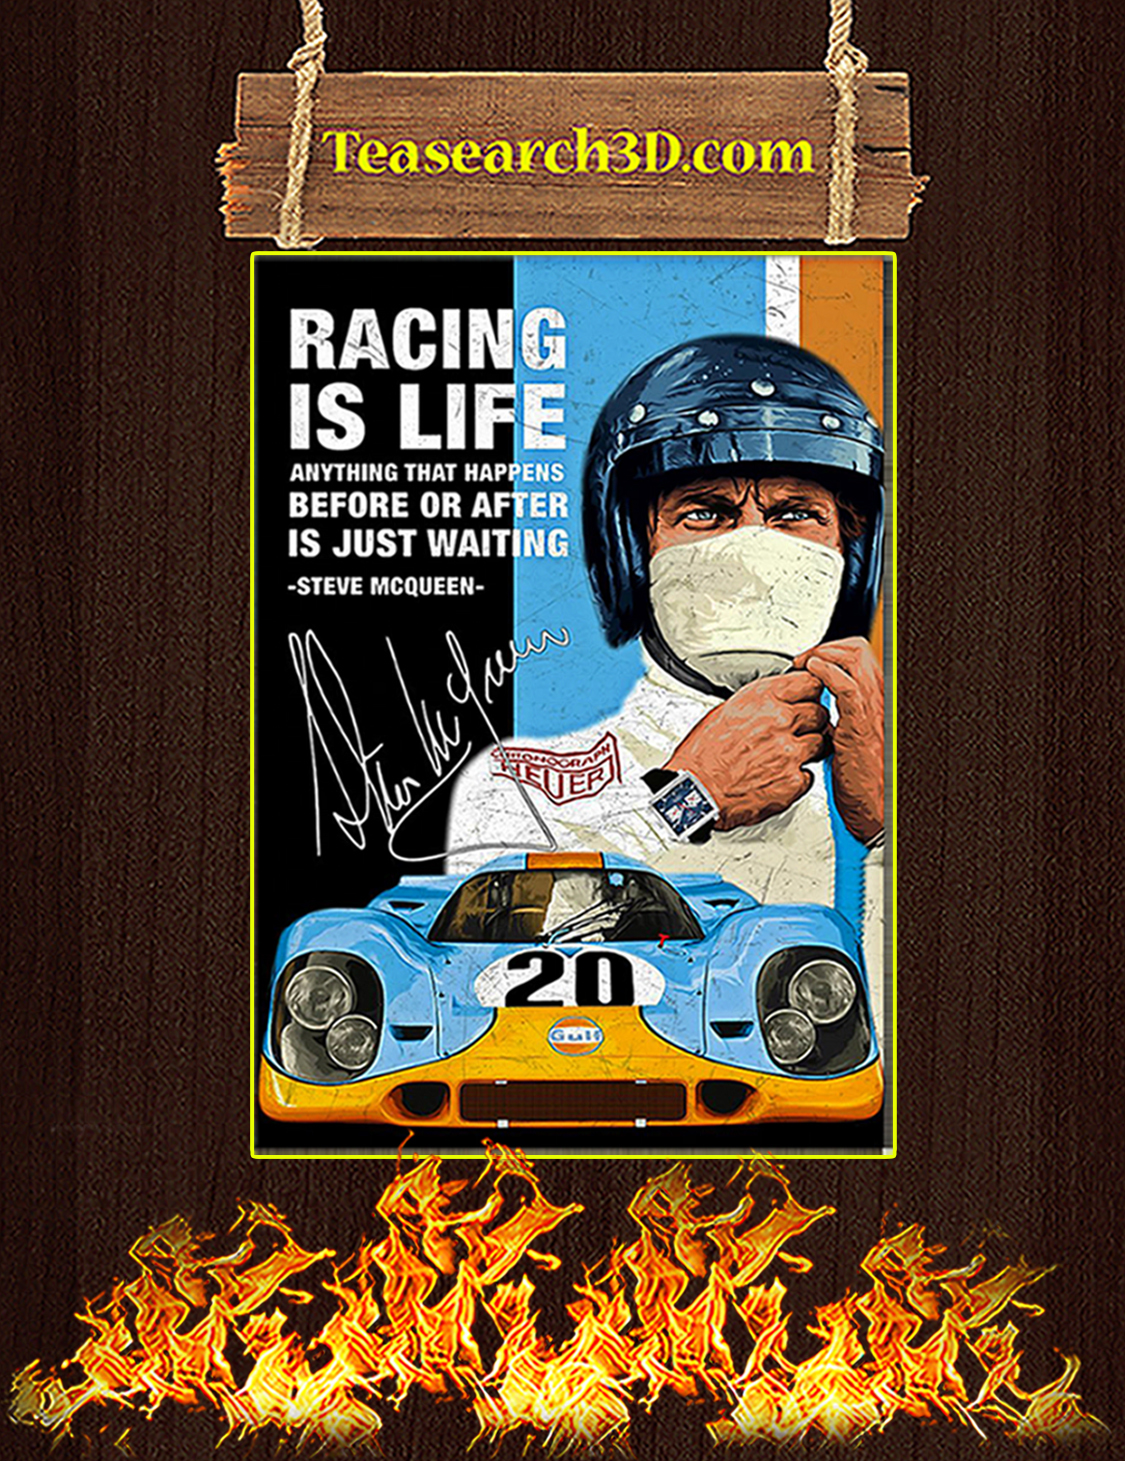 Racing Is Life Steve McQueen Signature Poster A3